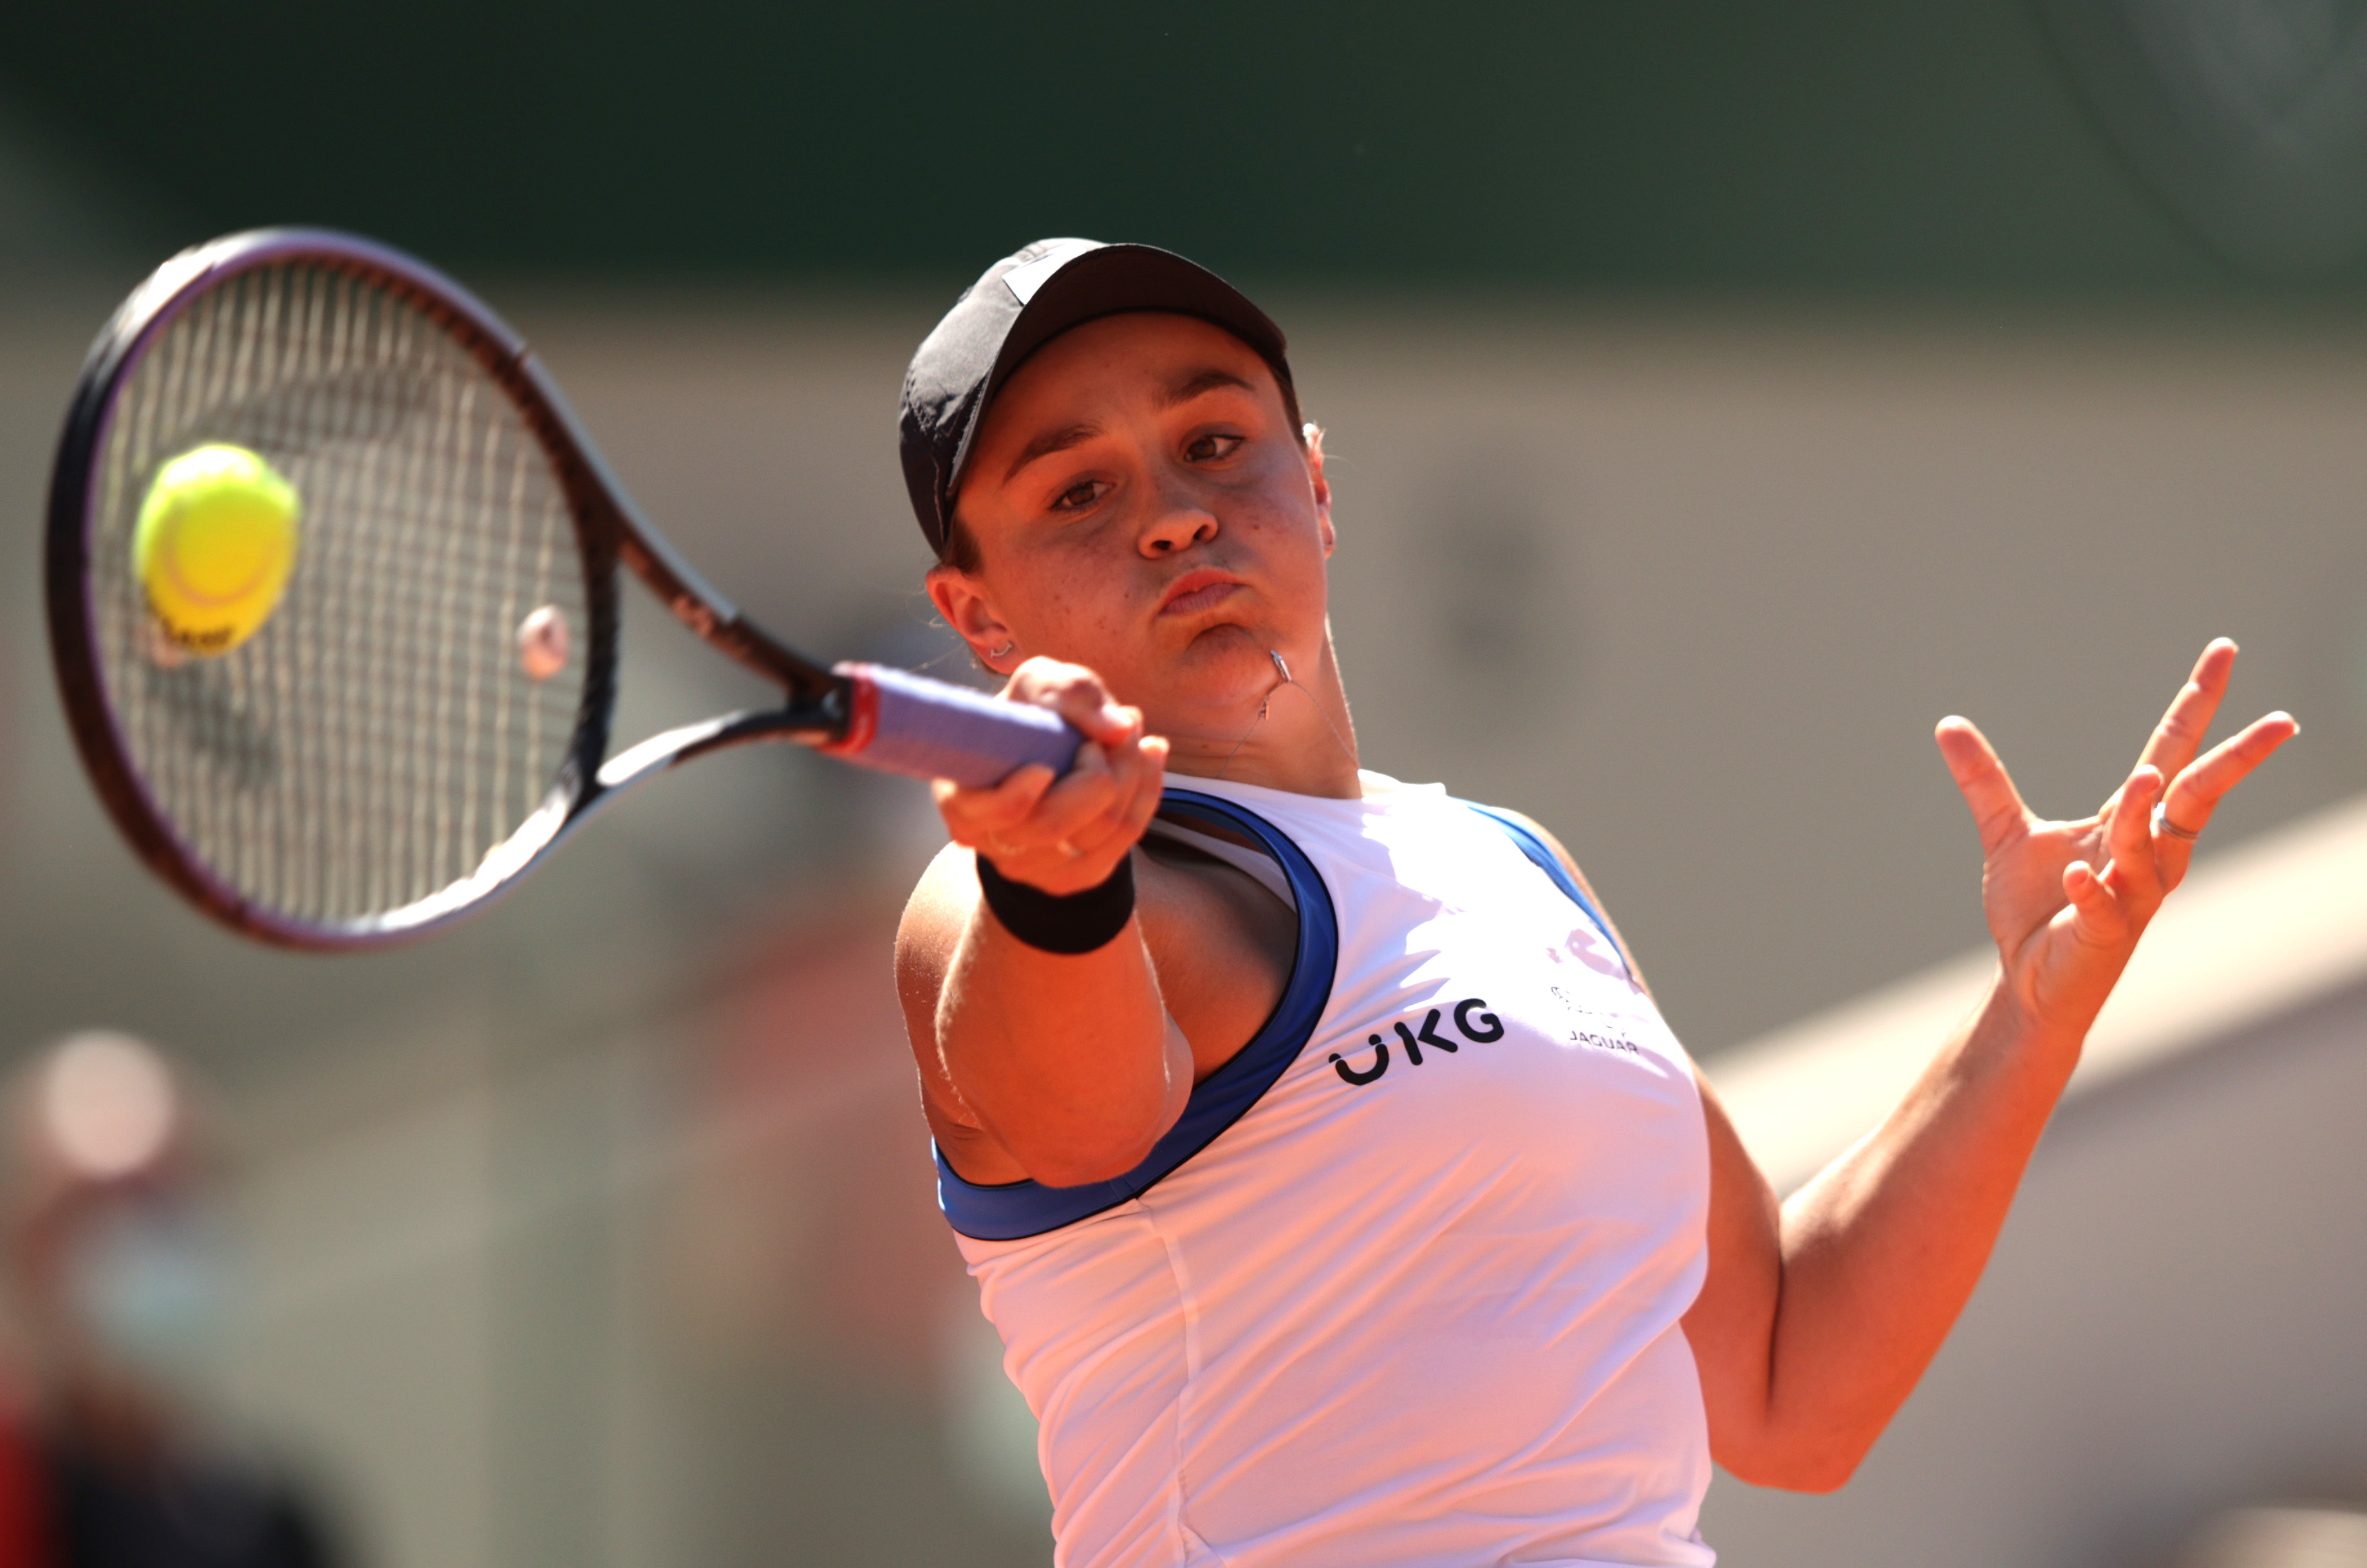 Ashleigh Barty discusses Wimbledon, her Olympic 'dream' and being her 'authentic self' with the media